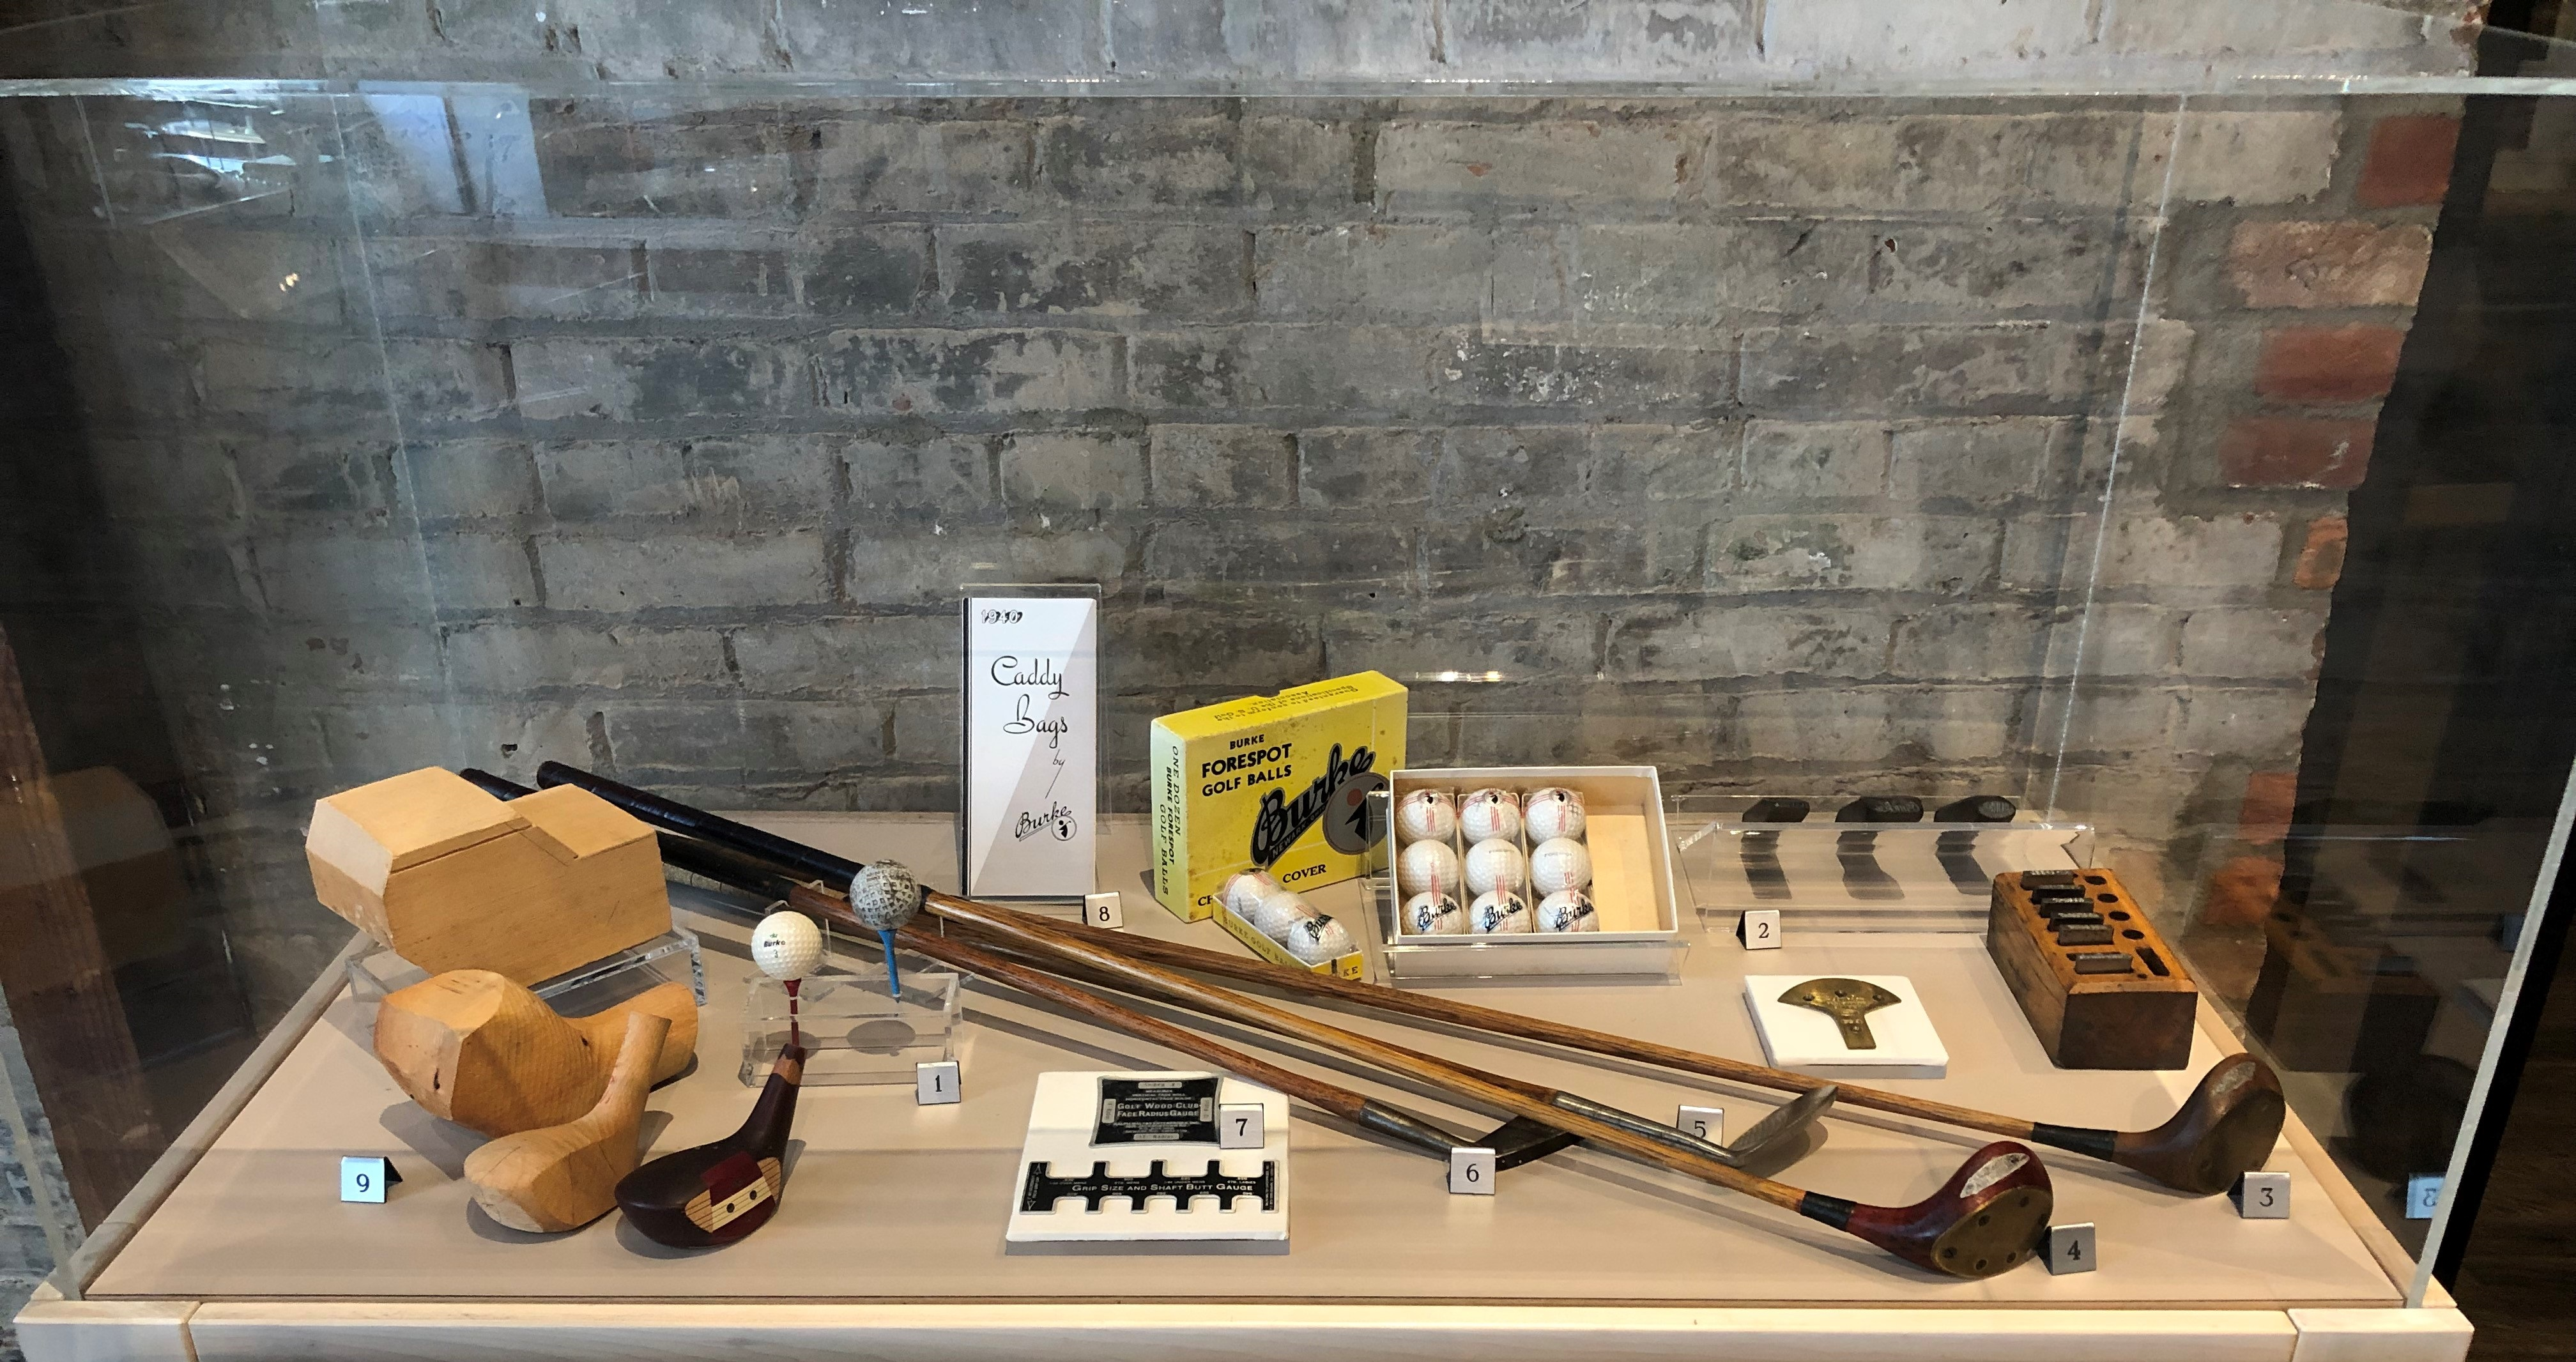 A variety of objects from the Burke Golf Company, including clubs, balls, stamps, and golf club gauges to ensure proper size.